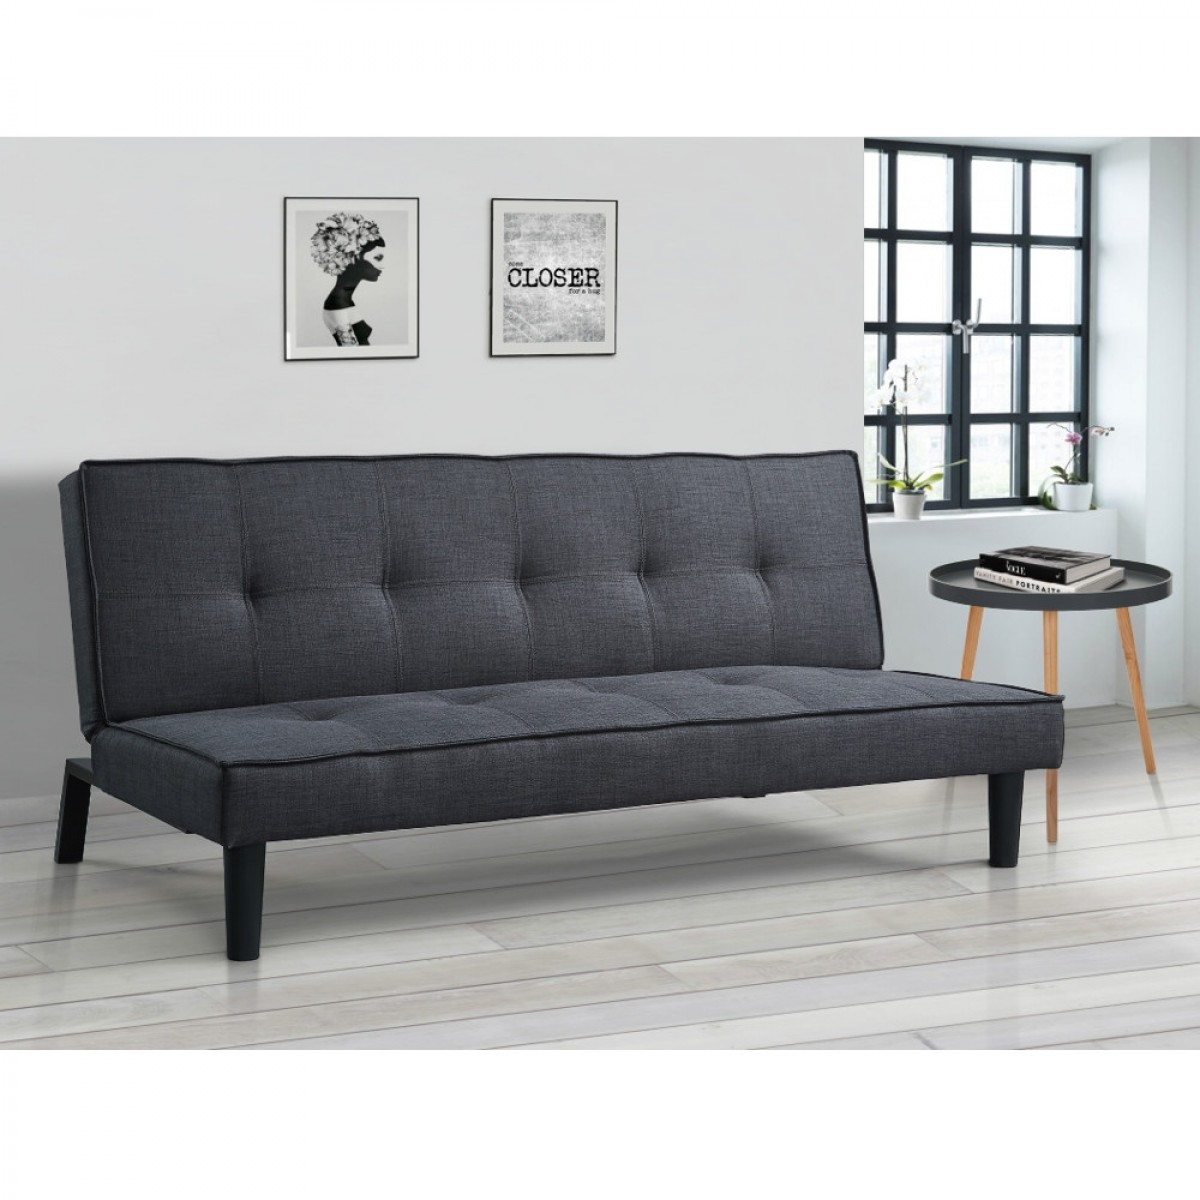 grey fabric sofa next dfs brown leather tyler bed tap to expand